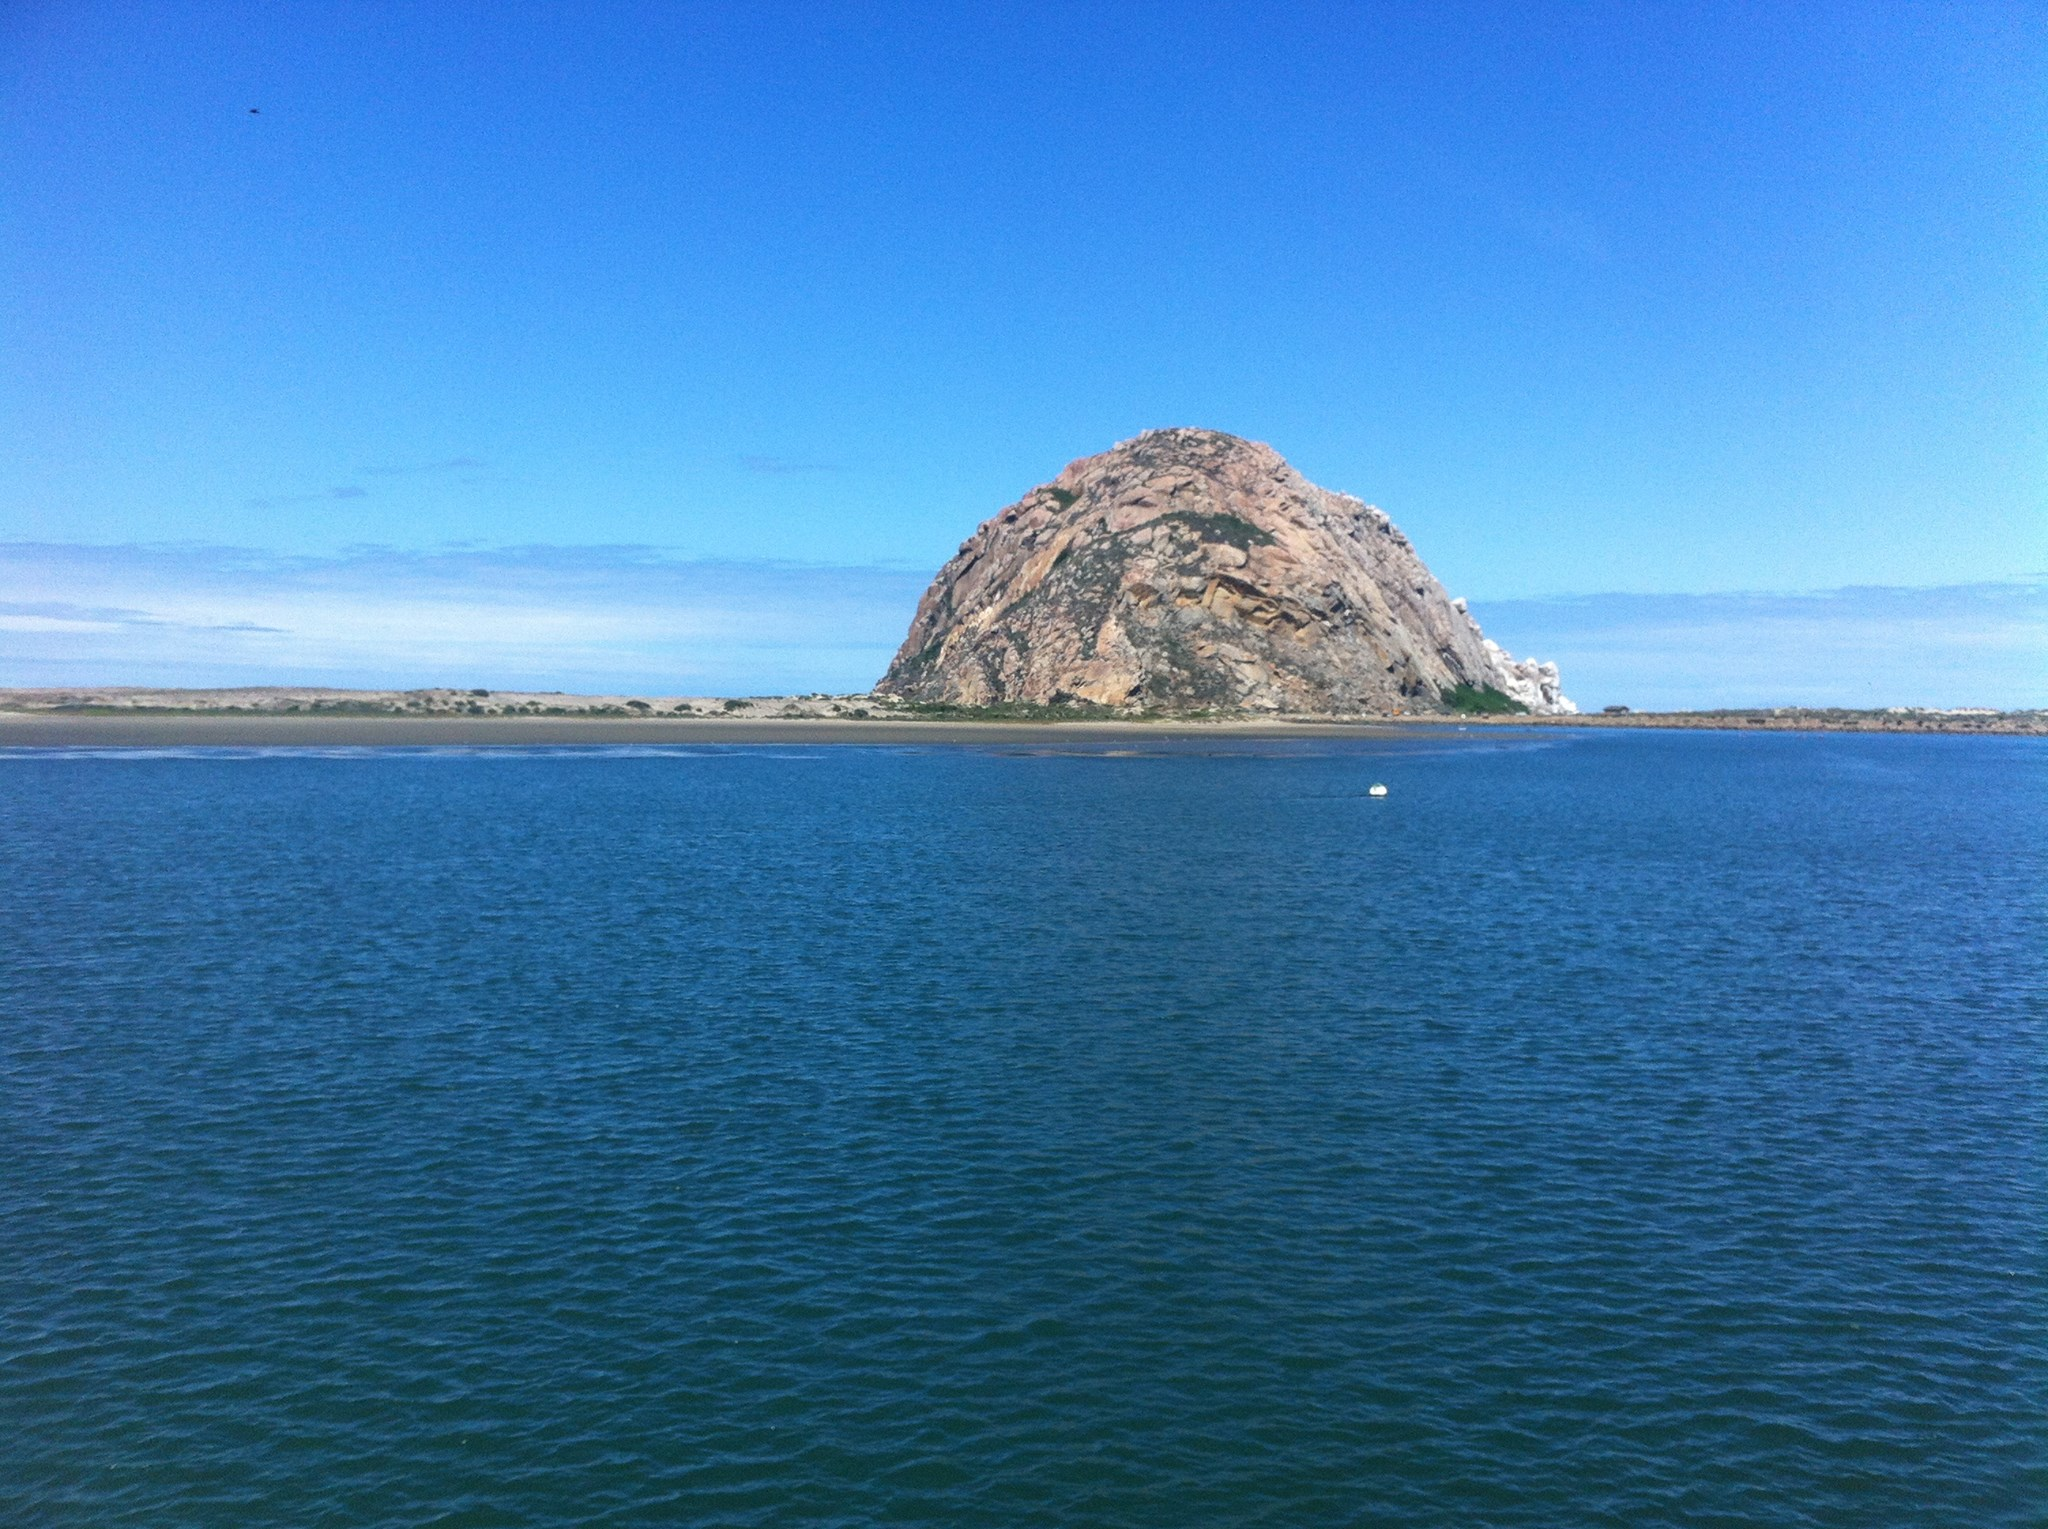 Morro Bay: Often called the